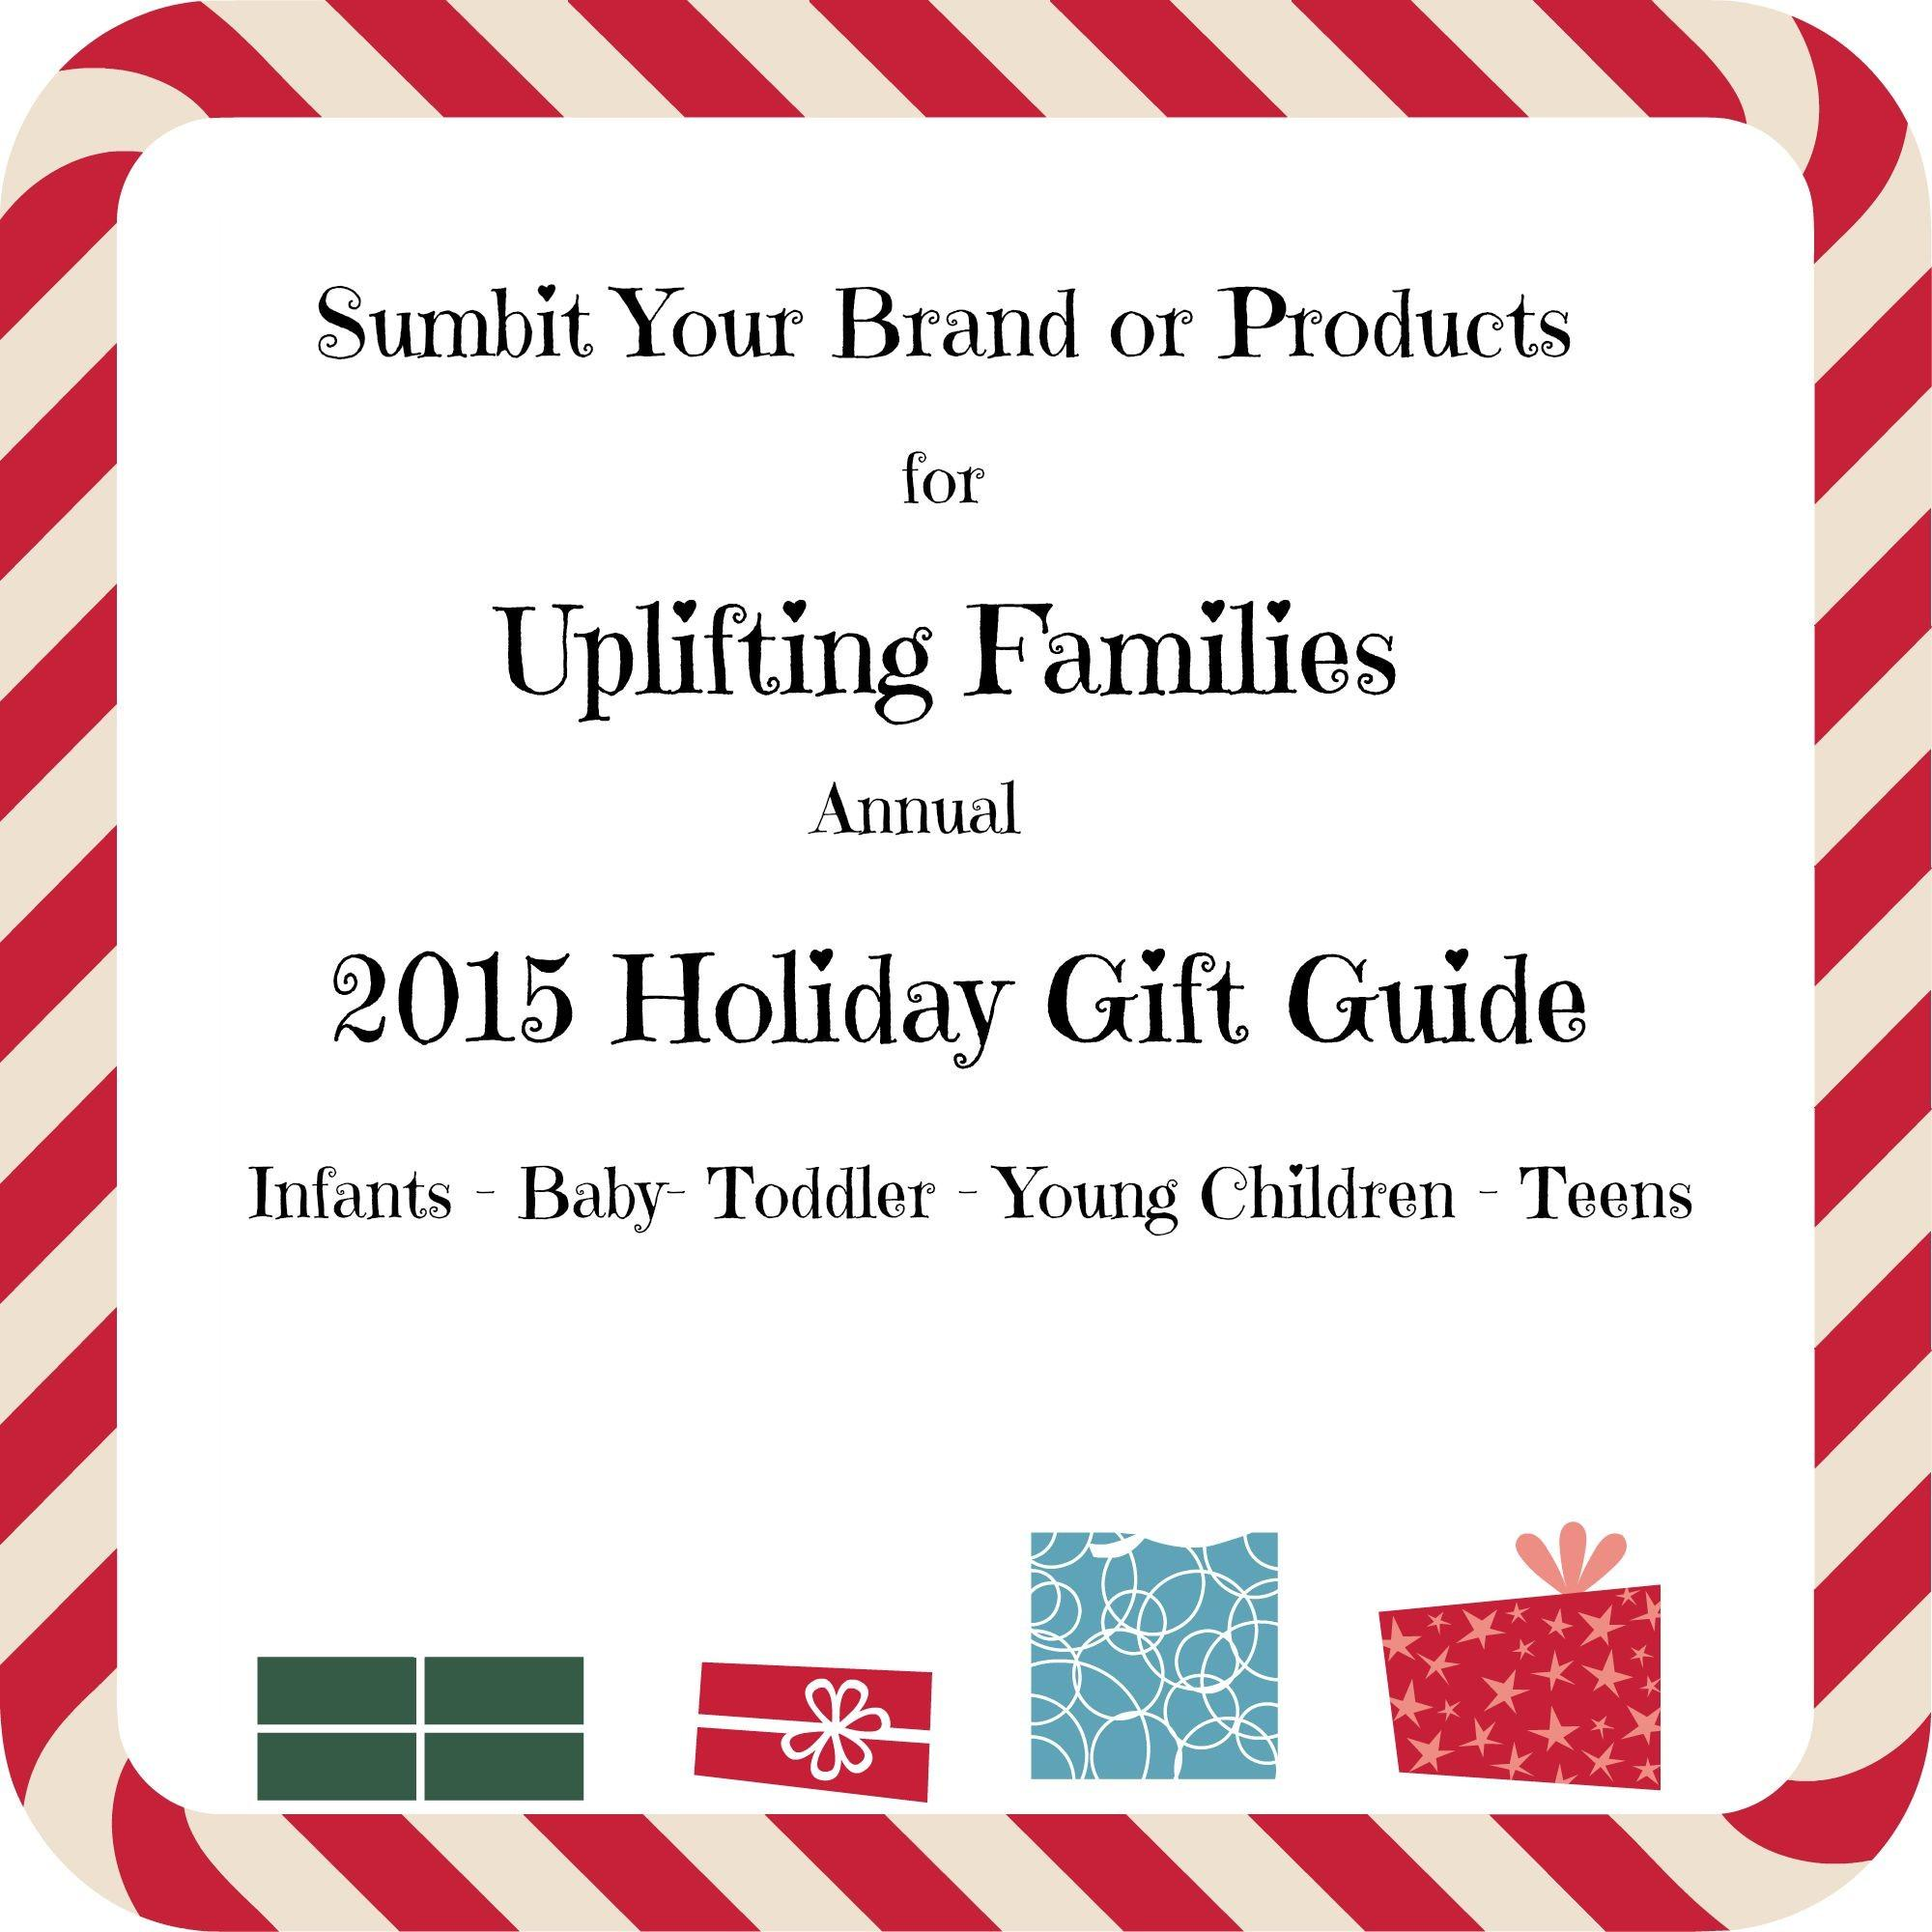 2015 Uplifting Families Holiday Gift Guide Parenting